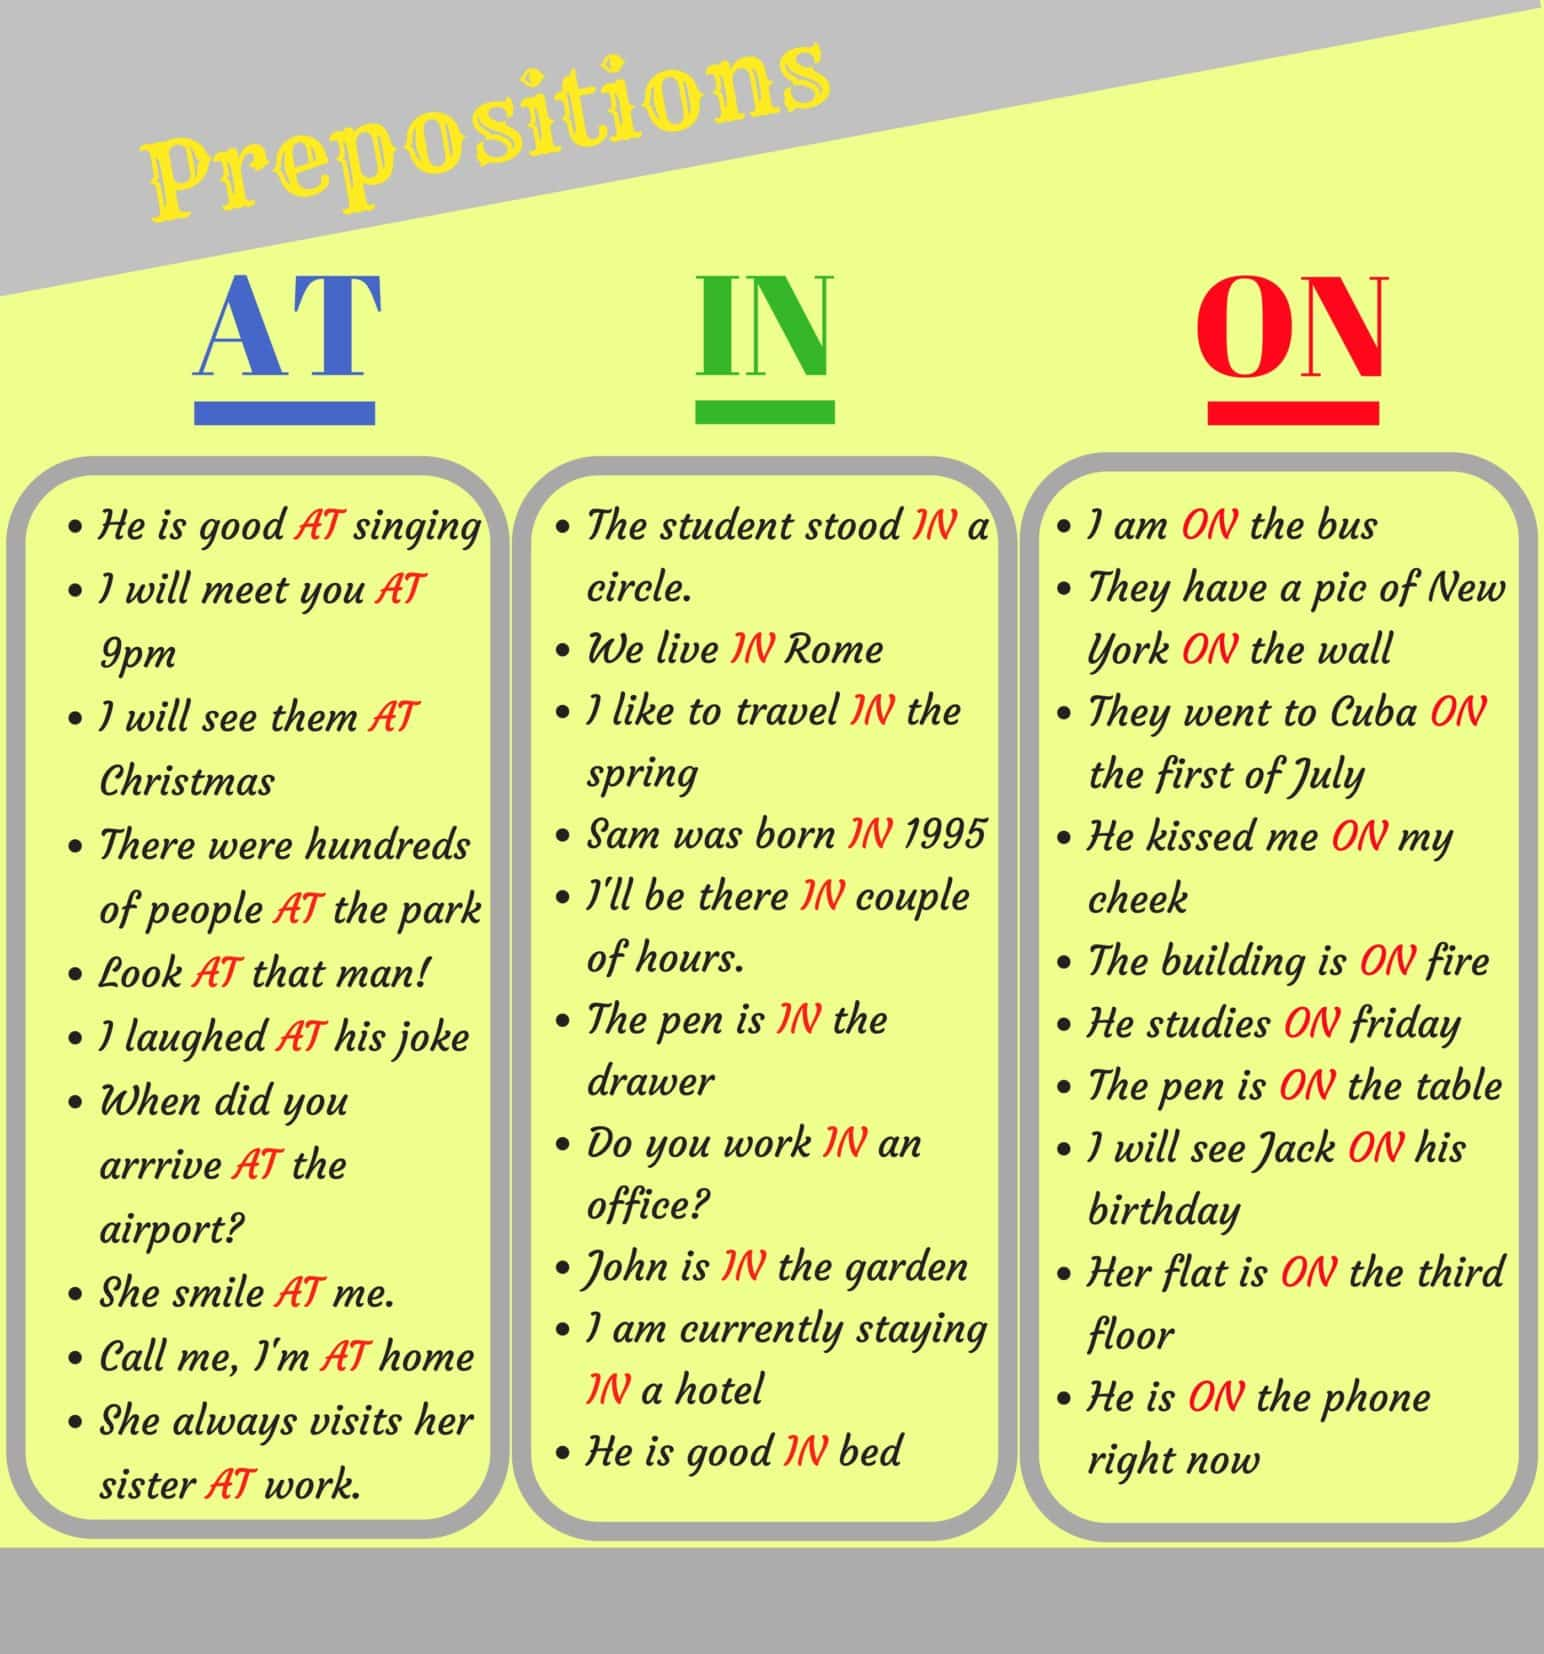 How to Use Prepositions AT – IN – ON 2